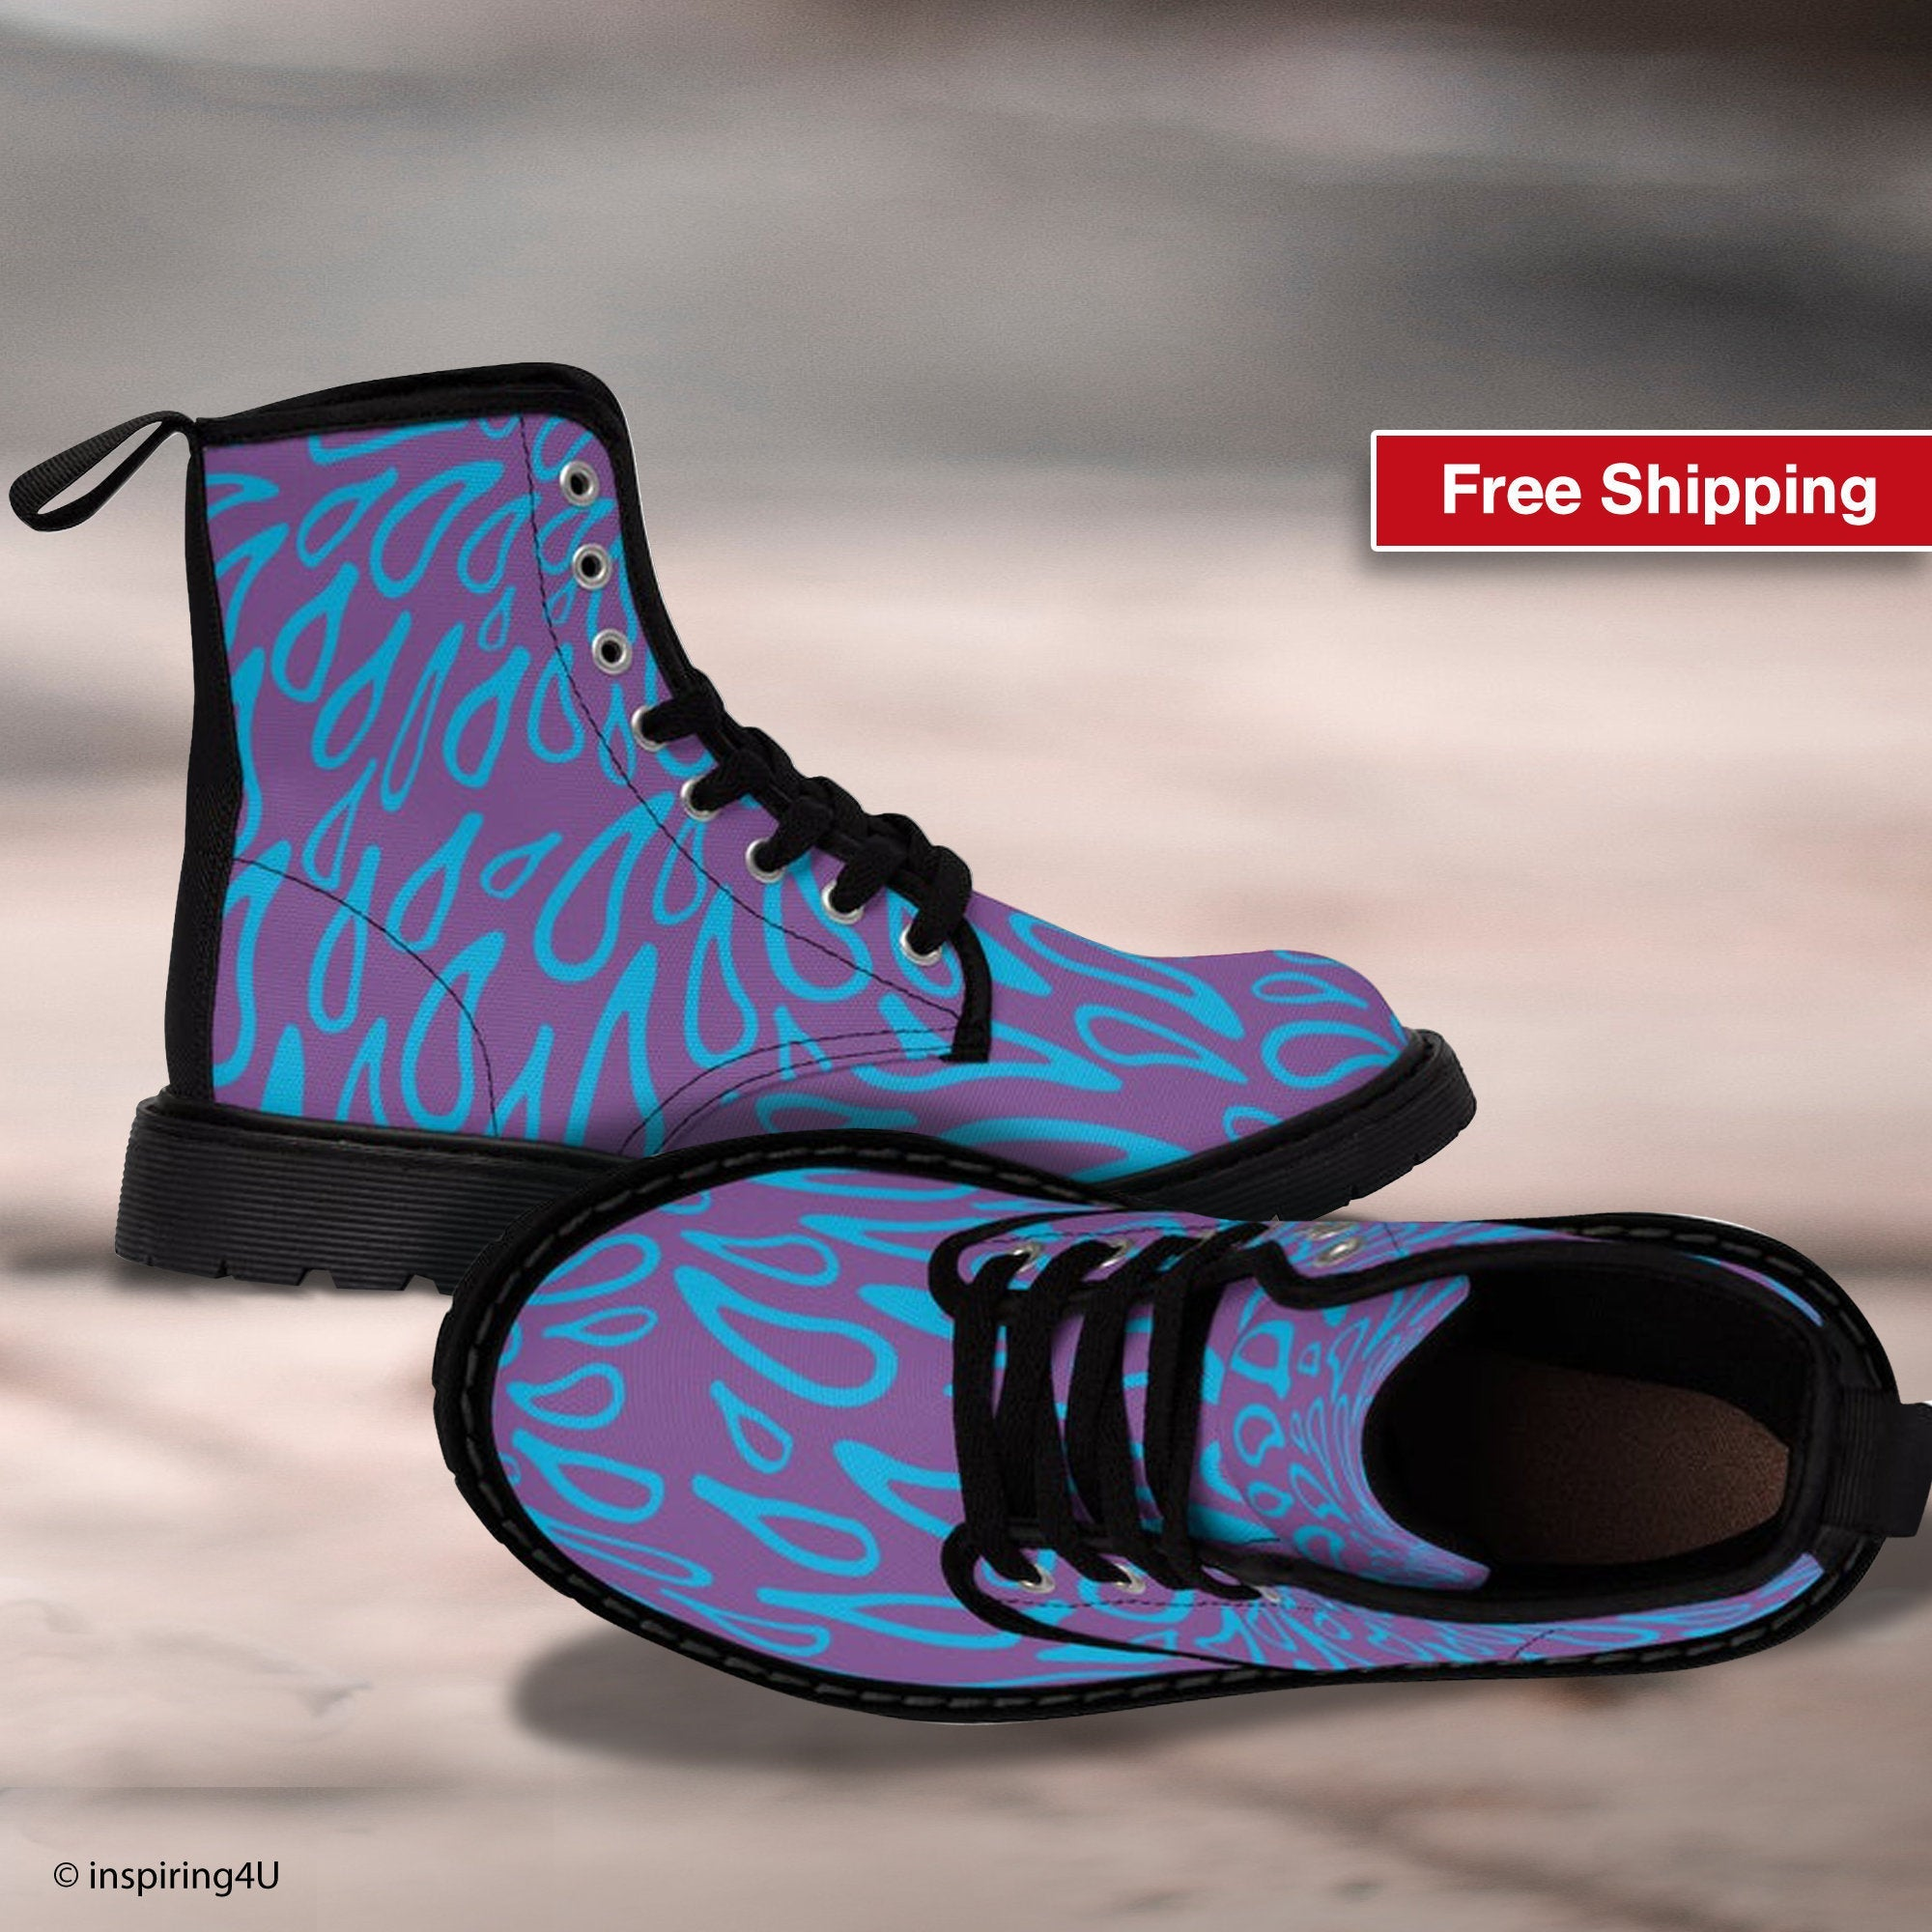 Purple Boots for women. Lace Up Boots. Fashion Hiking Boots. Women's Canvas Boots. Hiking and Walking Special Unique Fashion Boots.